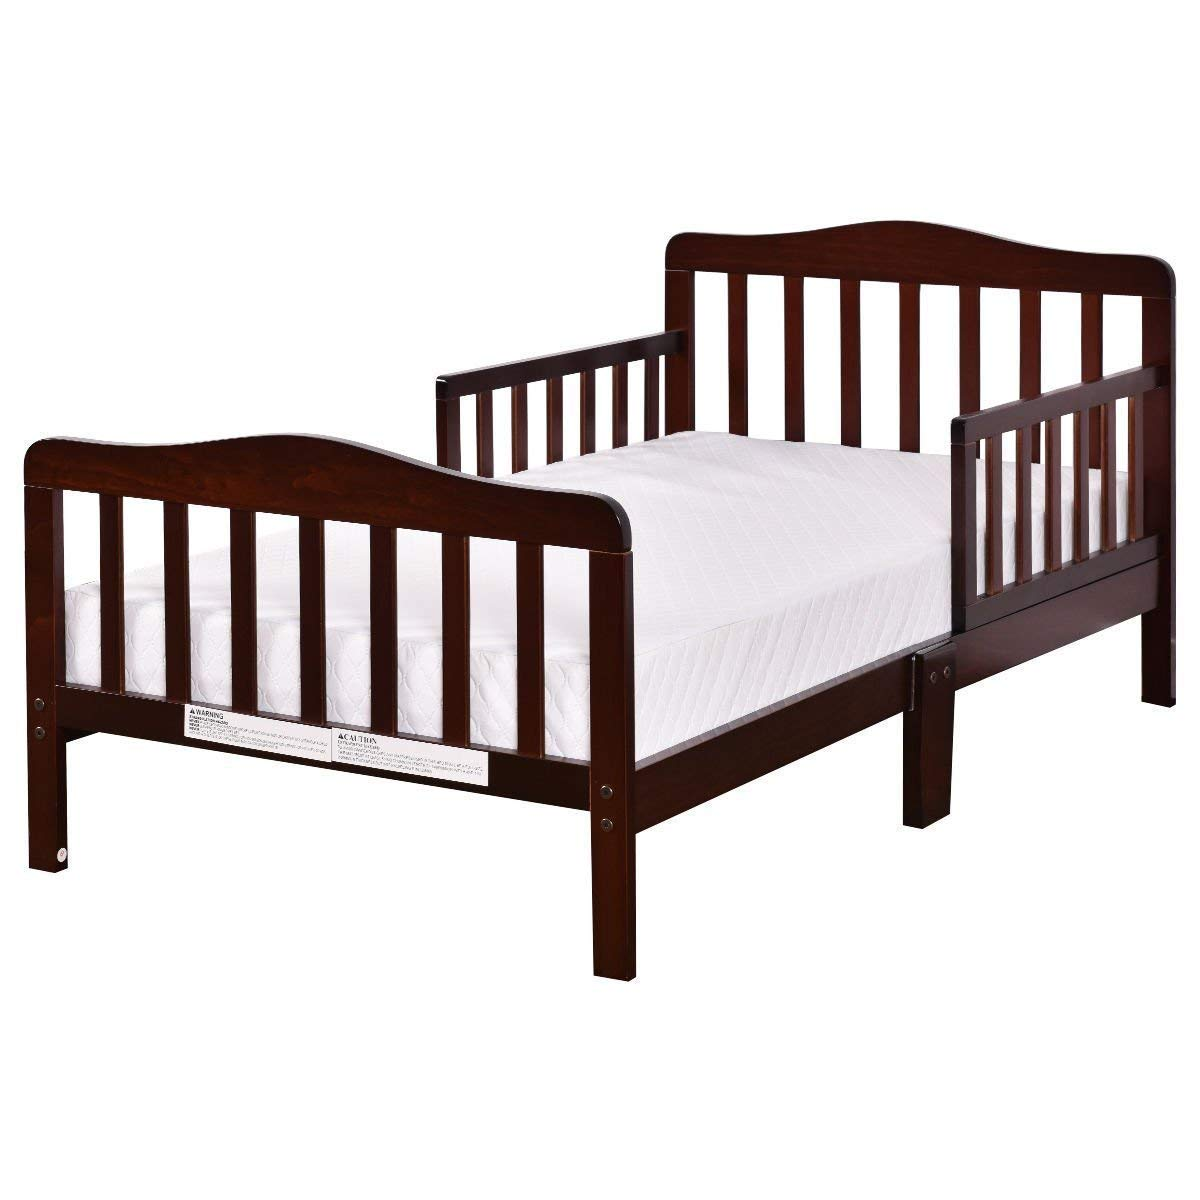 COSTWAY VD-4596BN Toddler Bed, Cherry